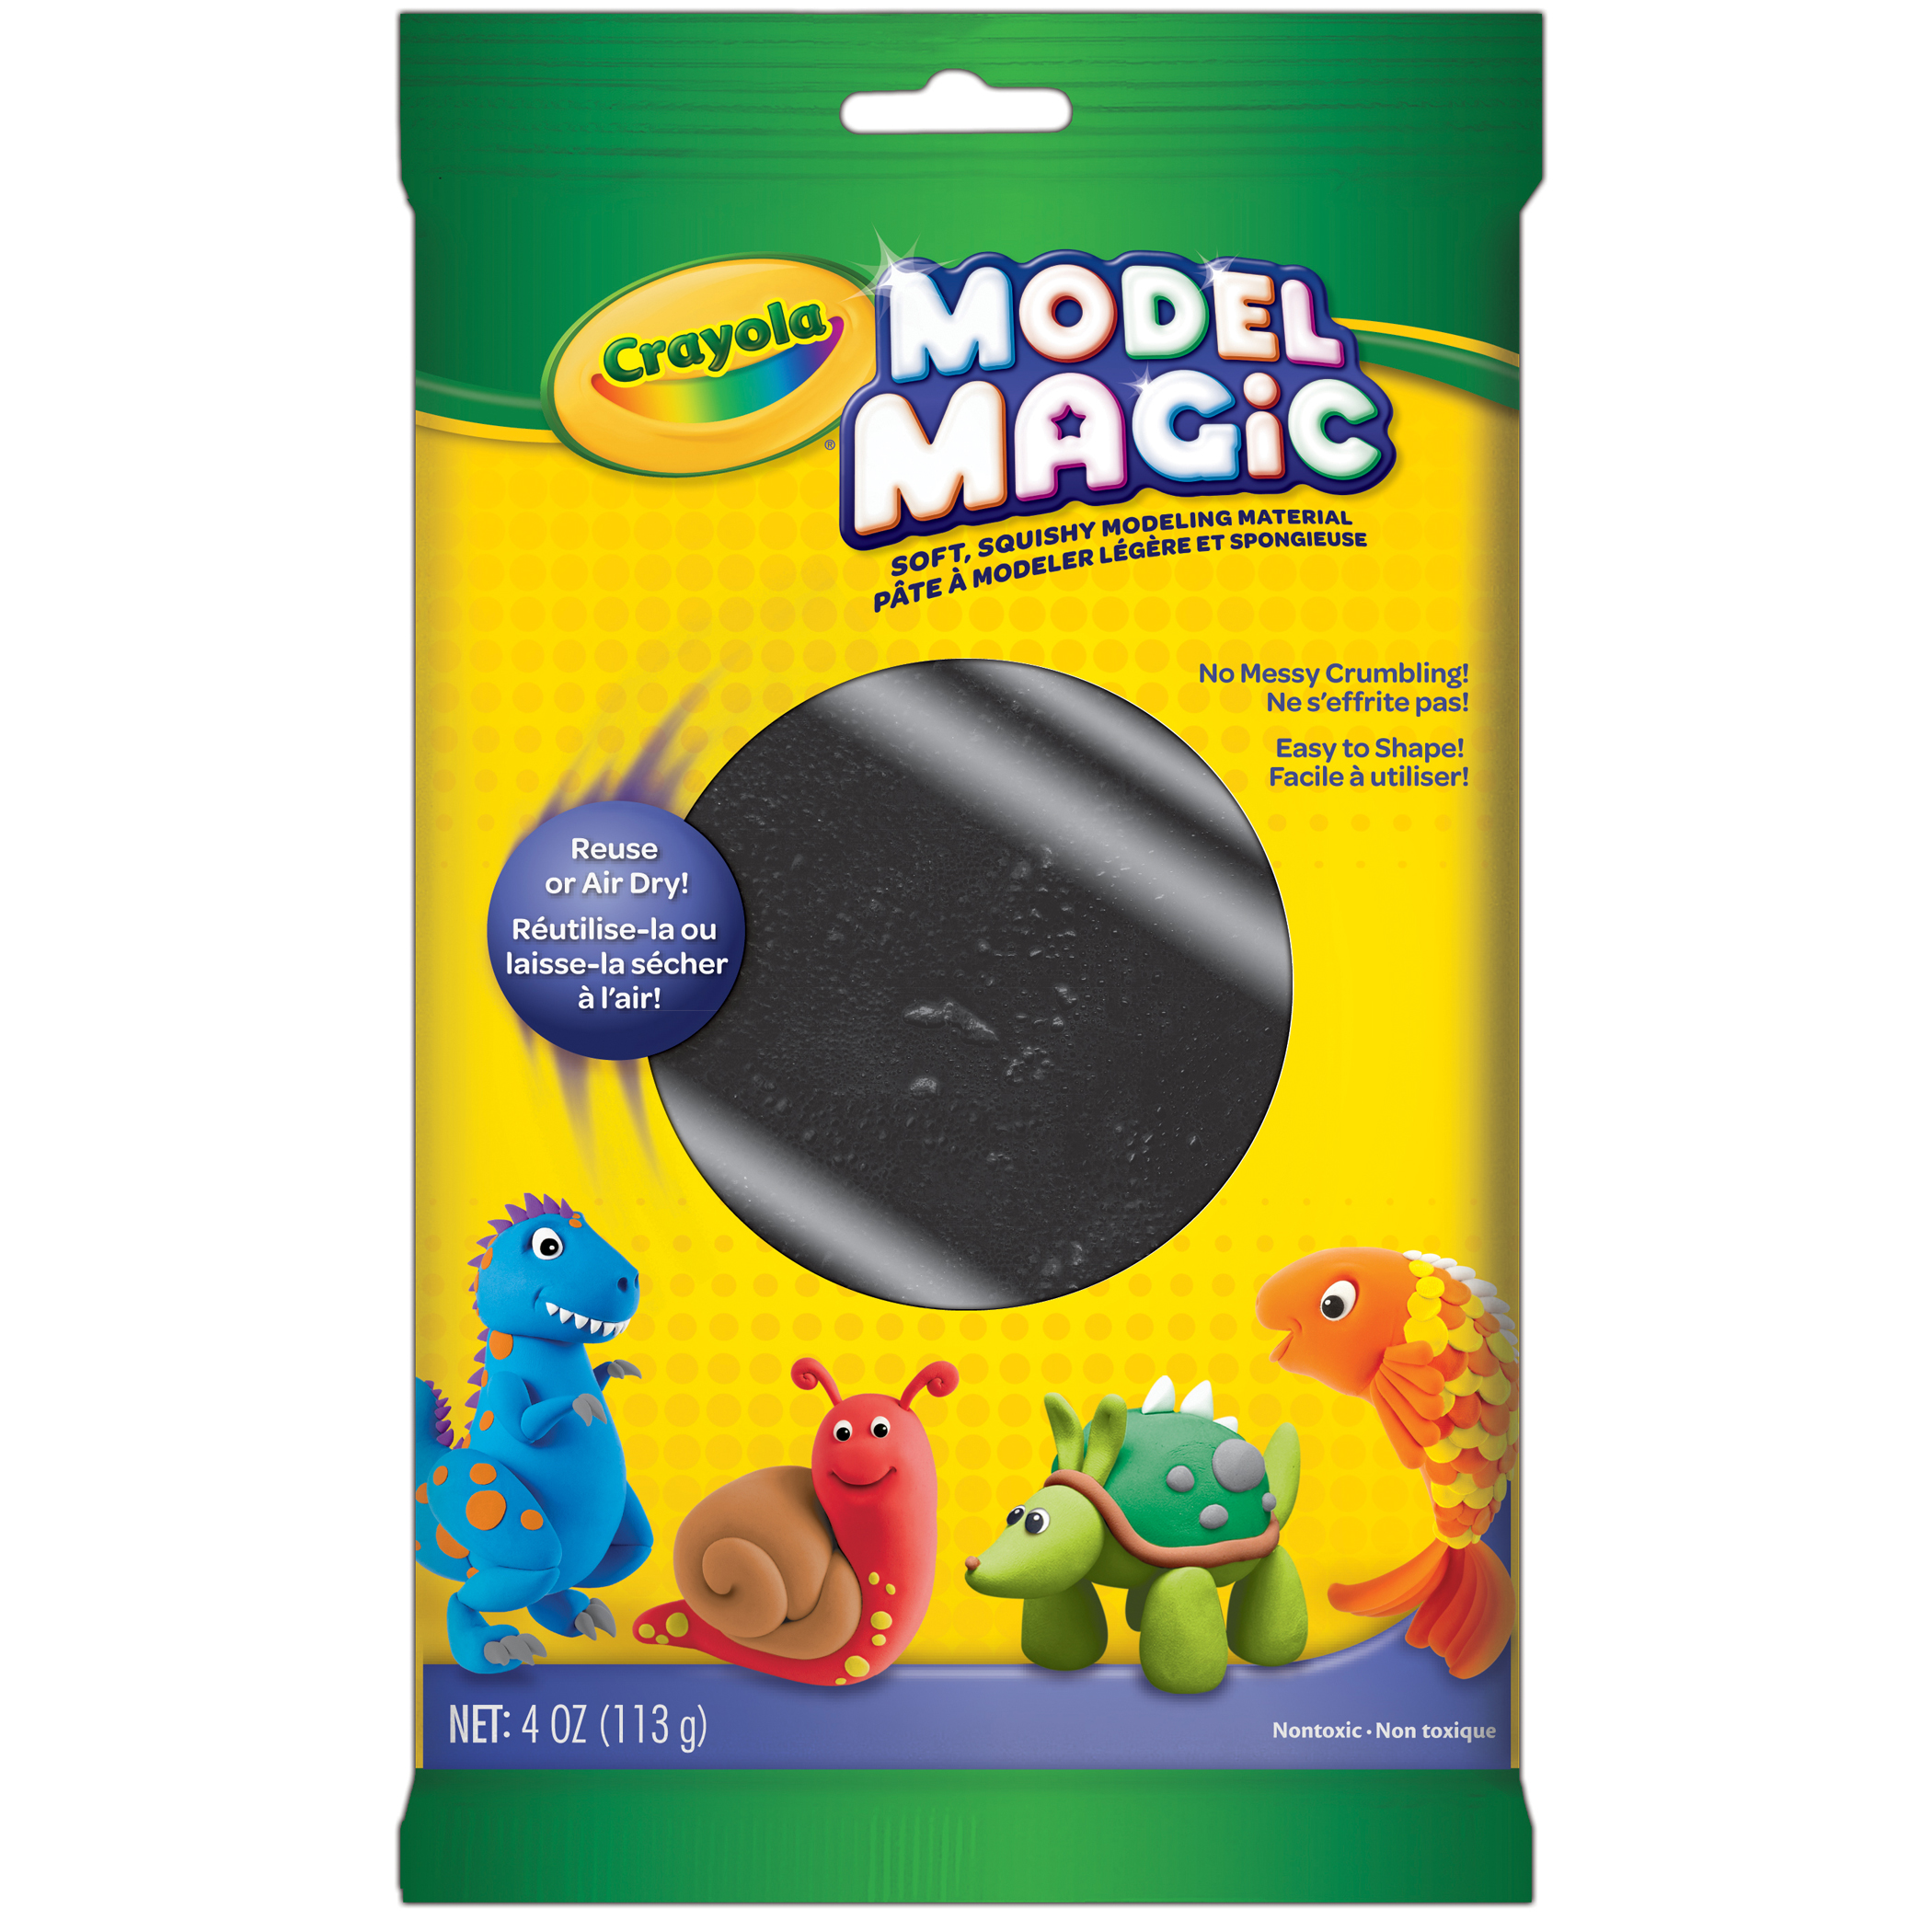 Crayola® Model Magic® Modeling Compound, Black, 4 oz packs, 6 packs